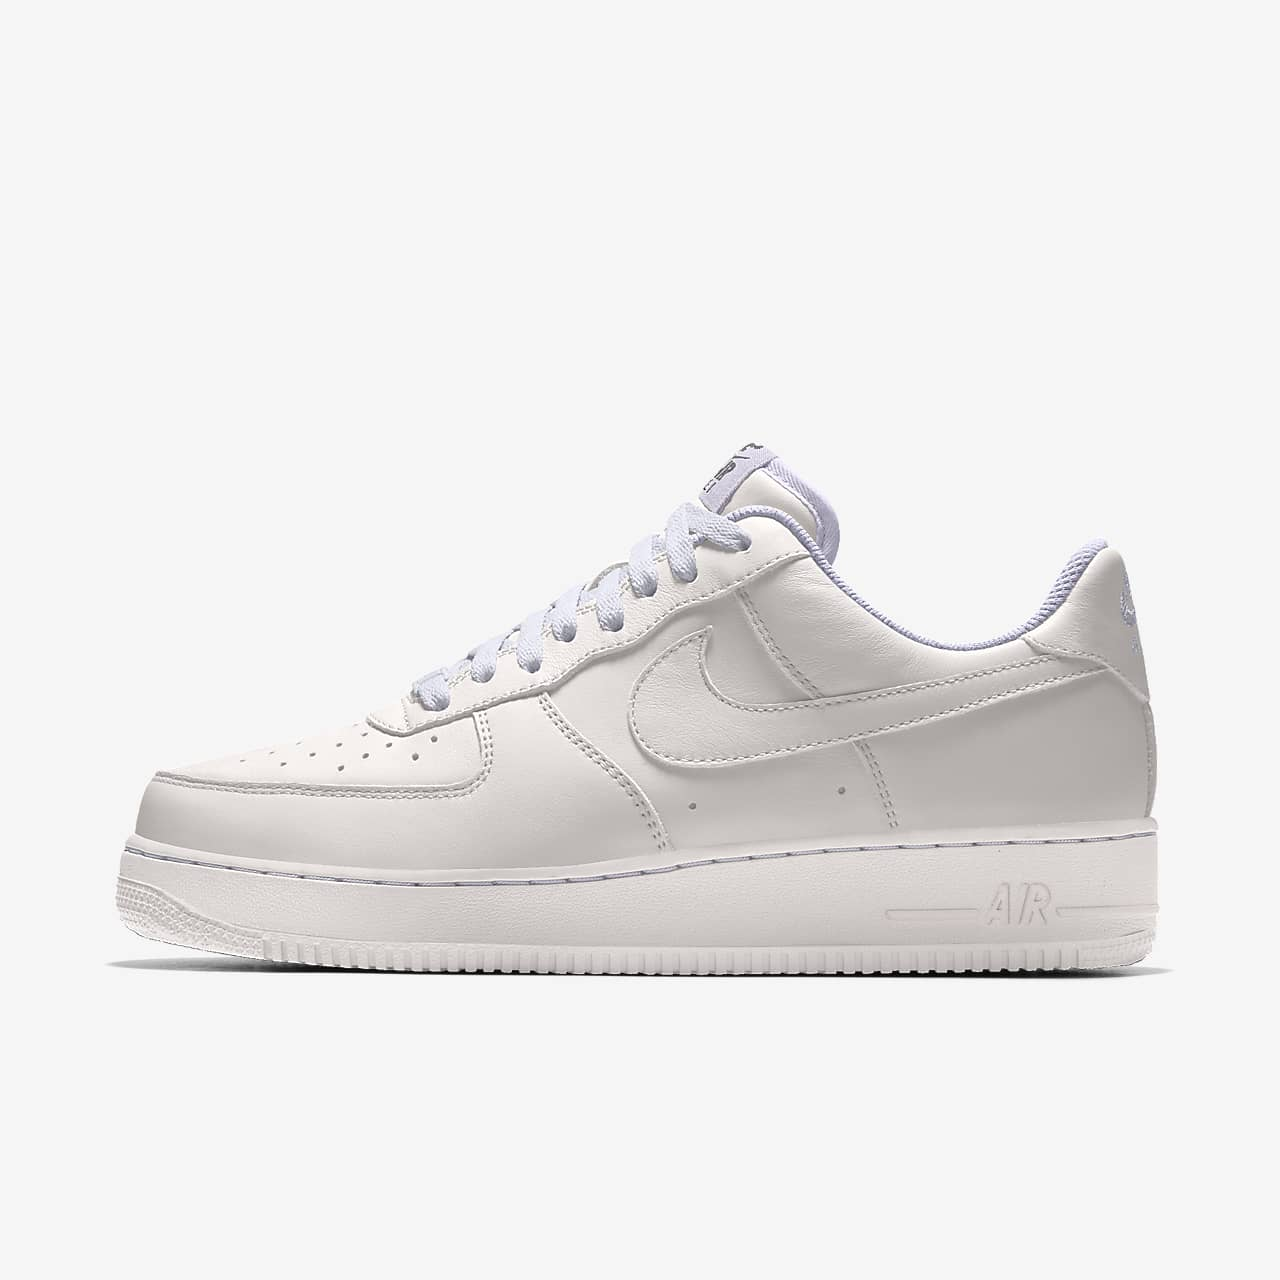 Chaussure personnalisable Nike Air Force 1 Low By You